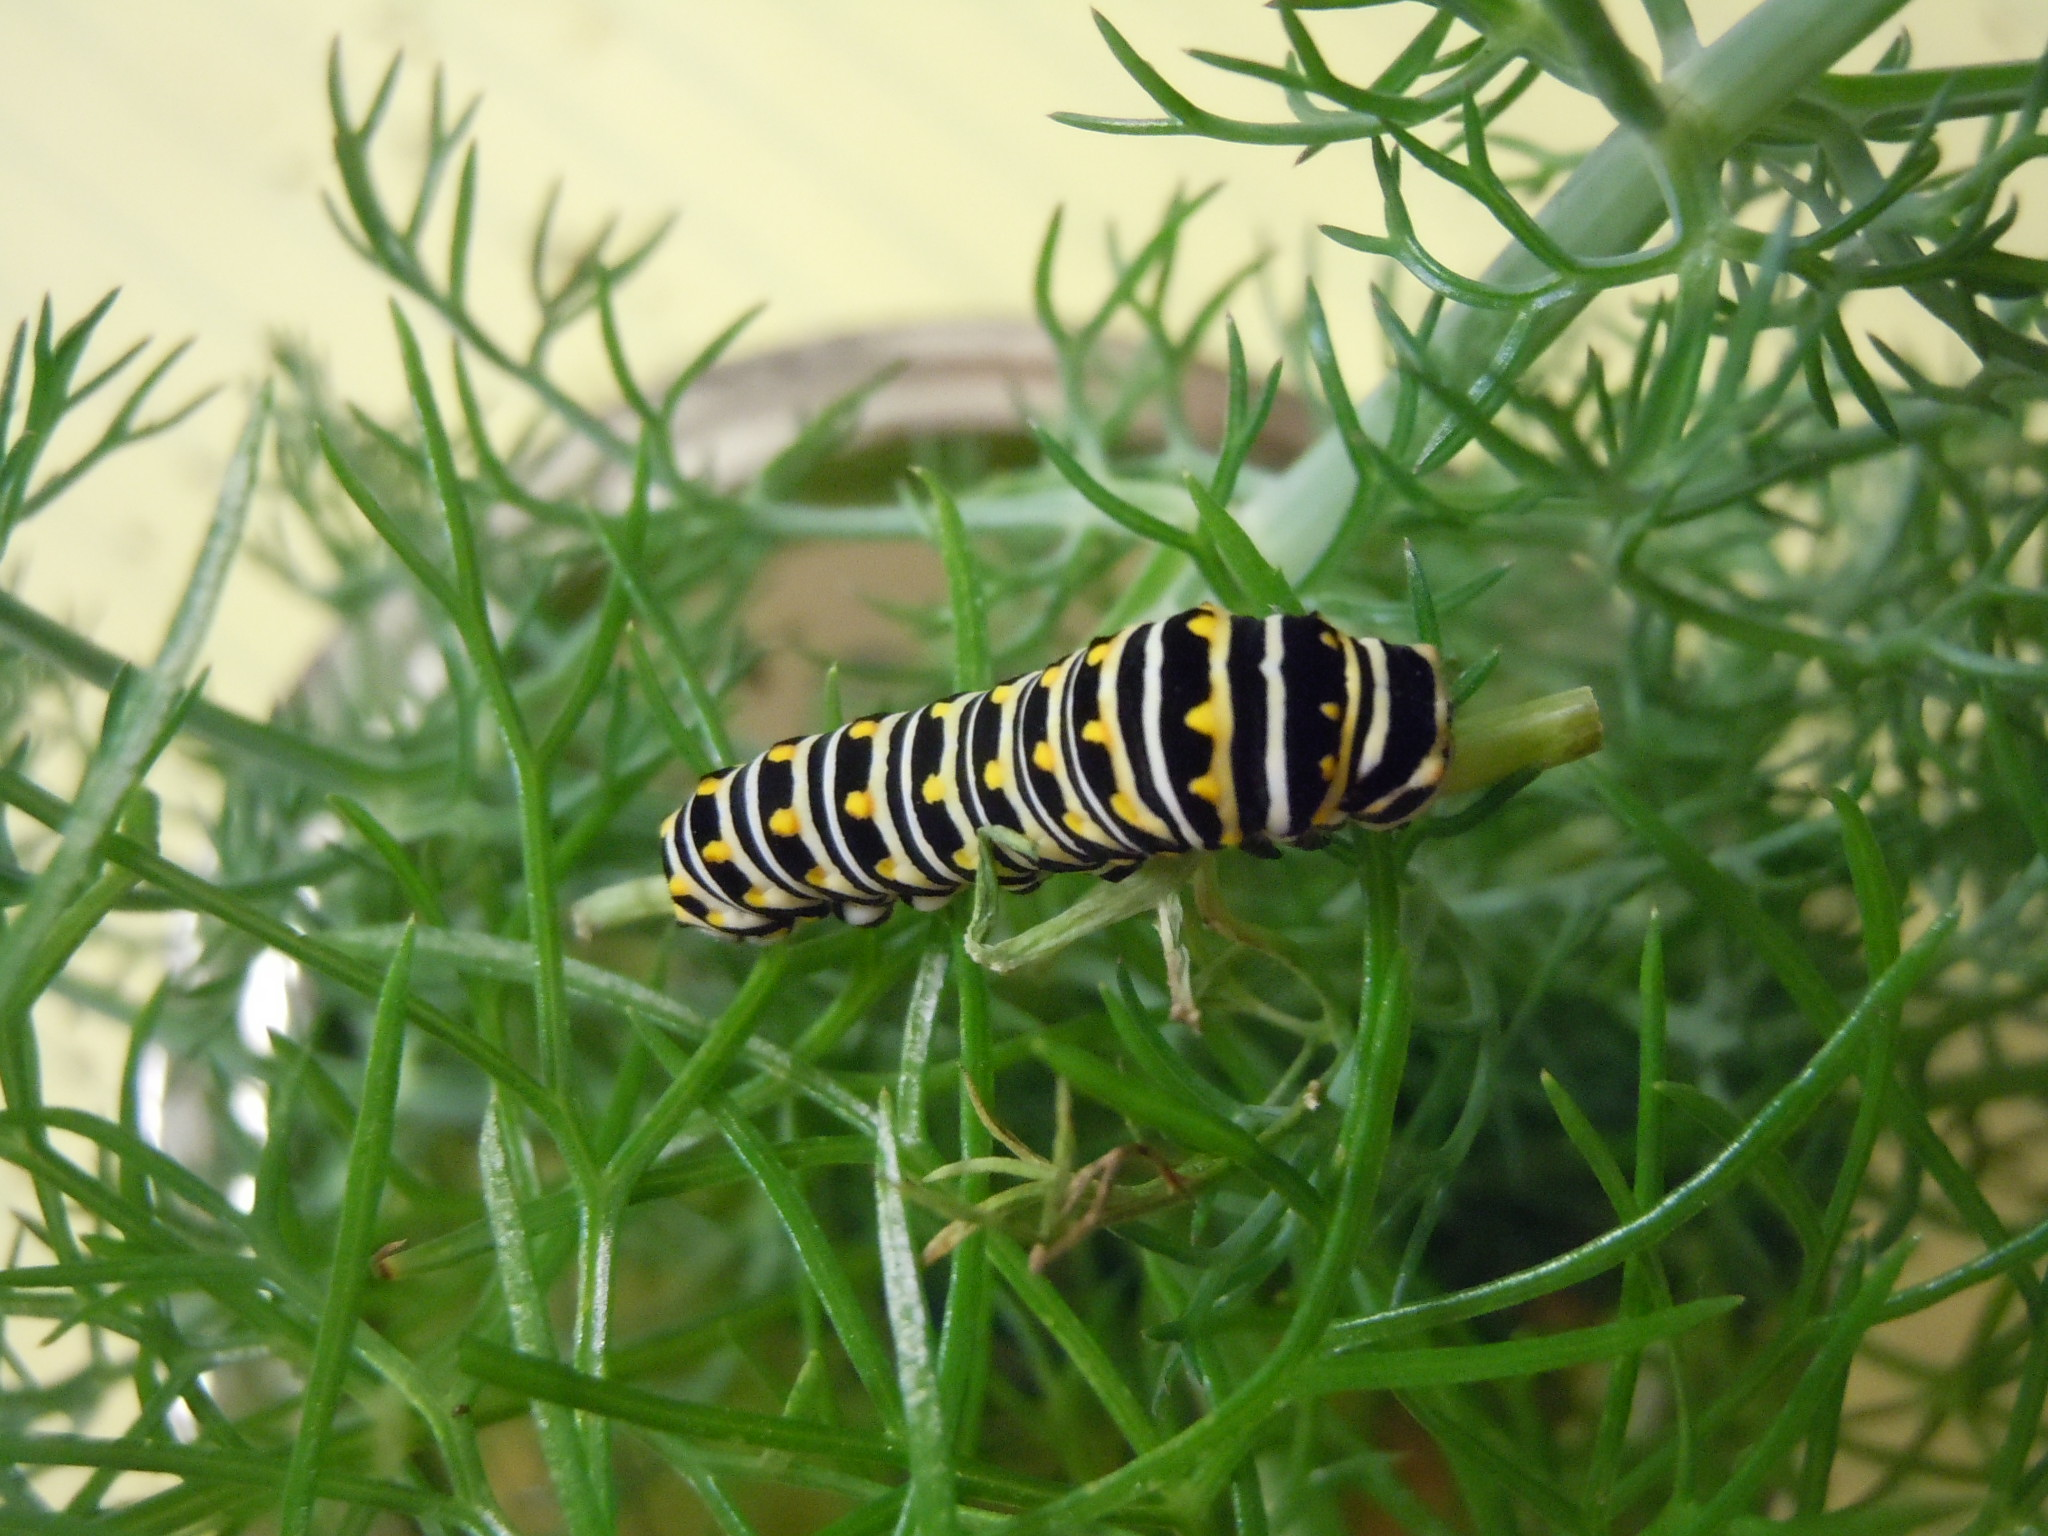 Eastern Swallowtail Caterpillar on Fennel